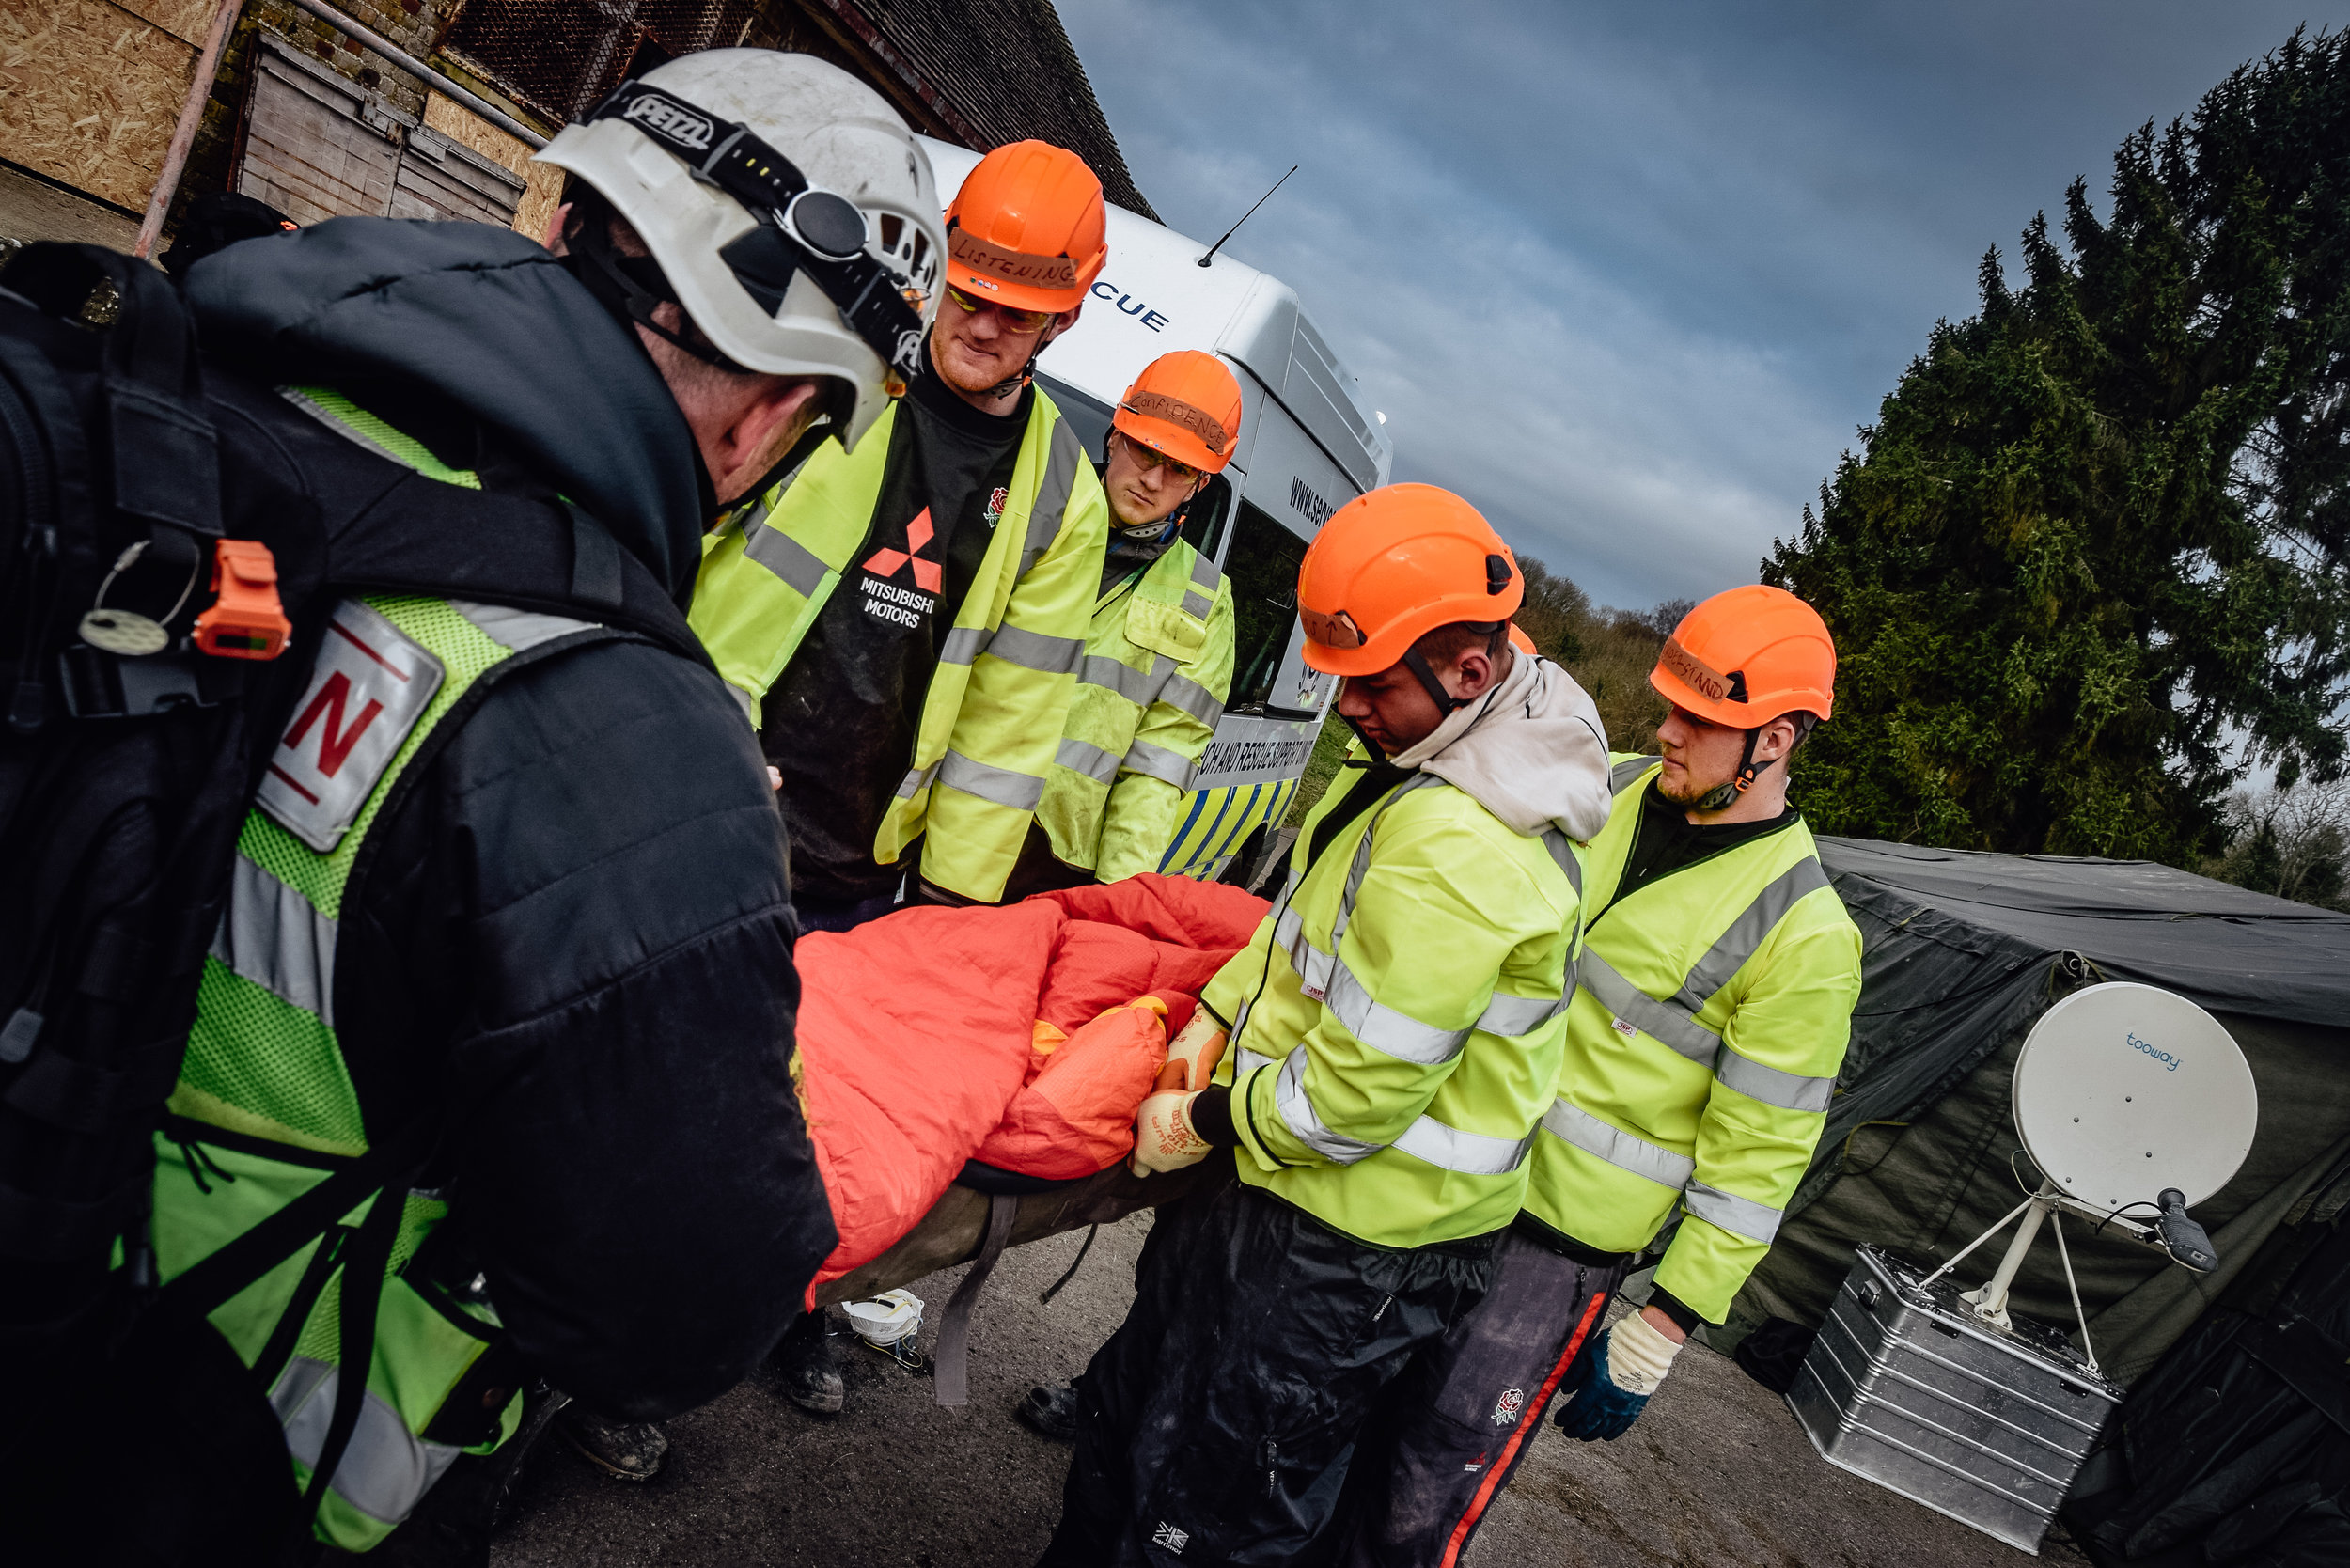 England U20 stars in a disaster rescue scenario with humanitarian charity volunteers from Serve On.